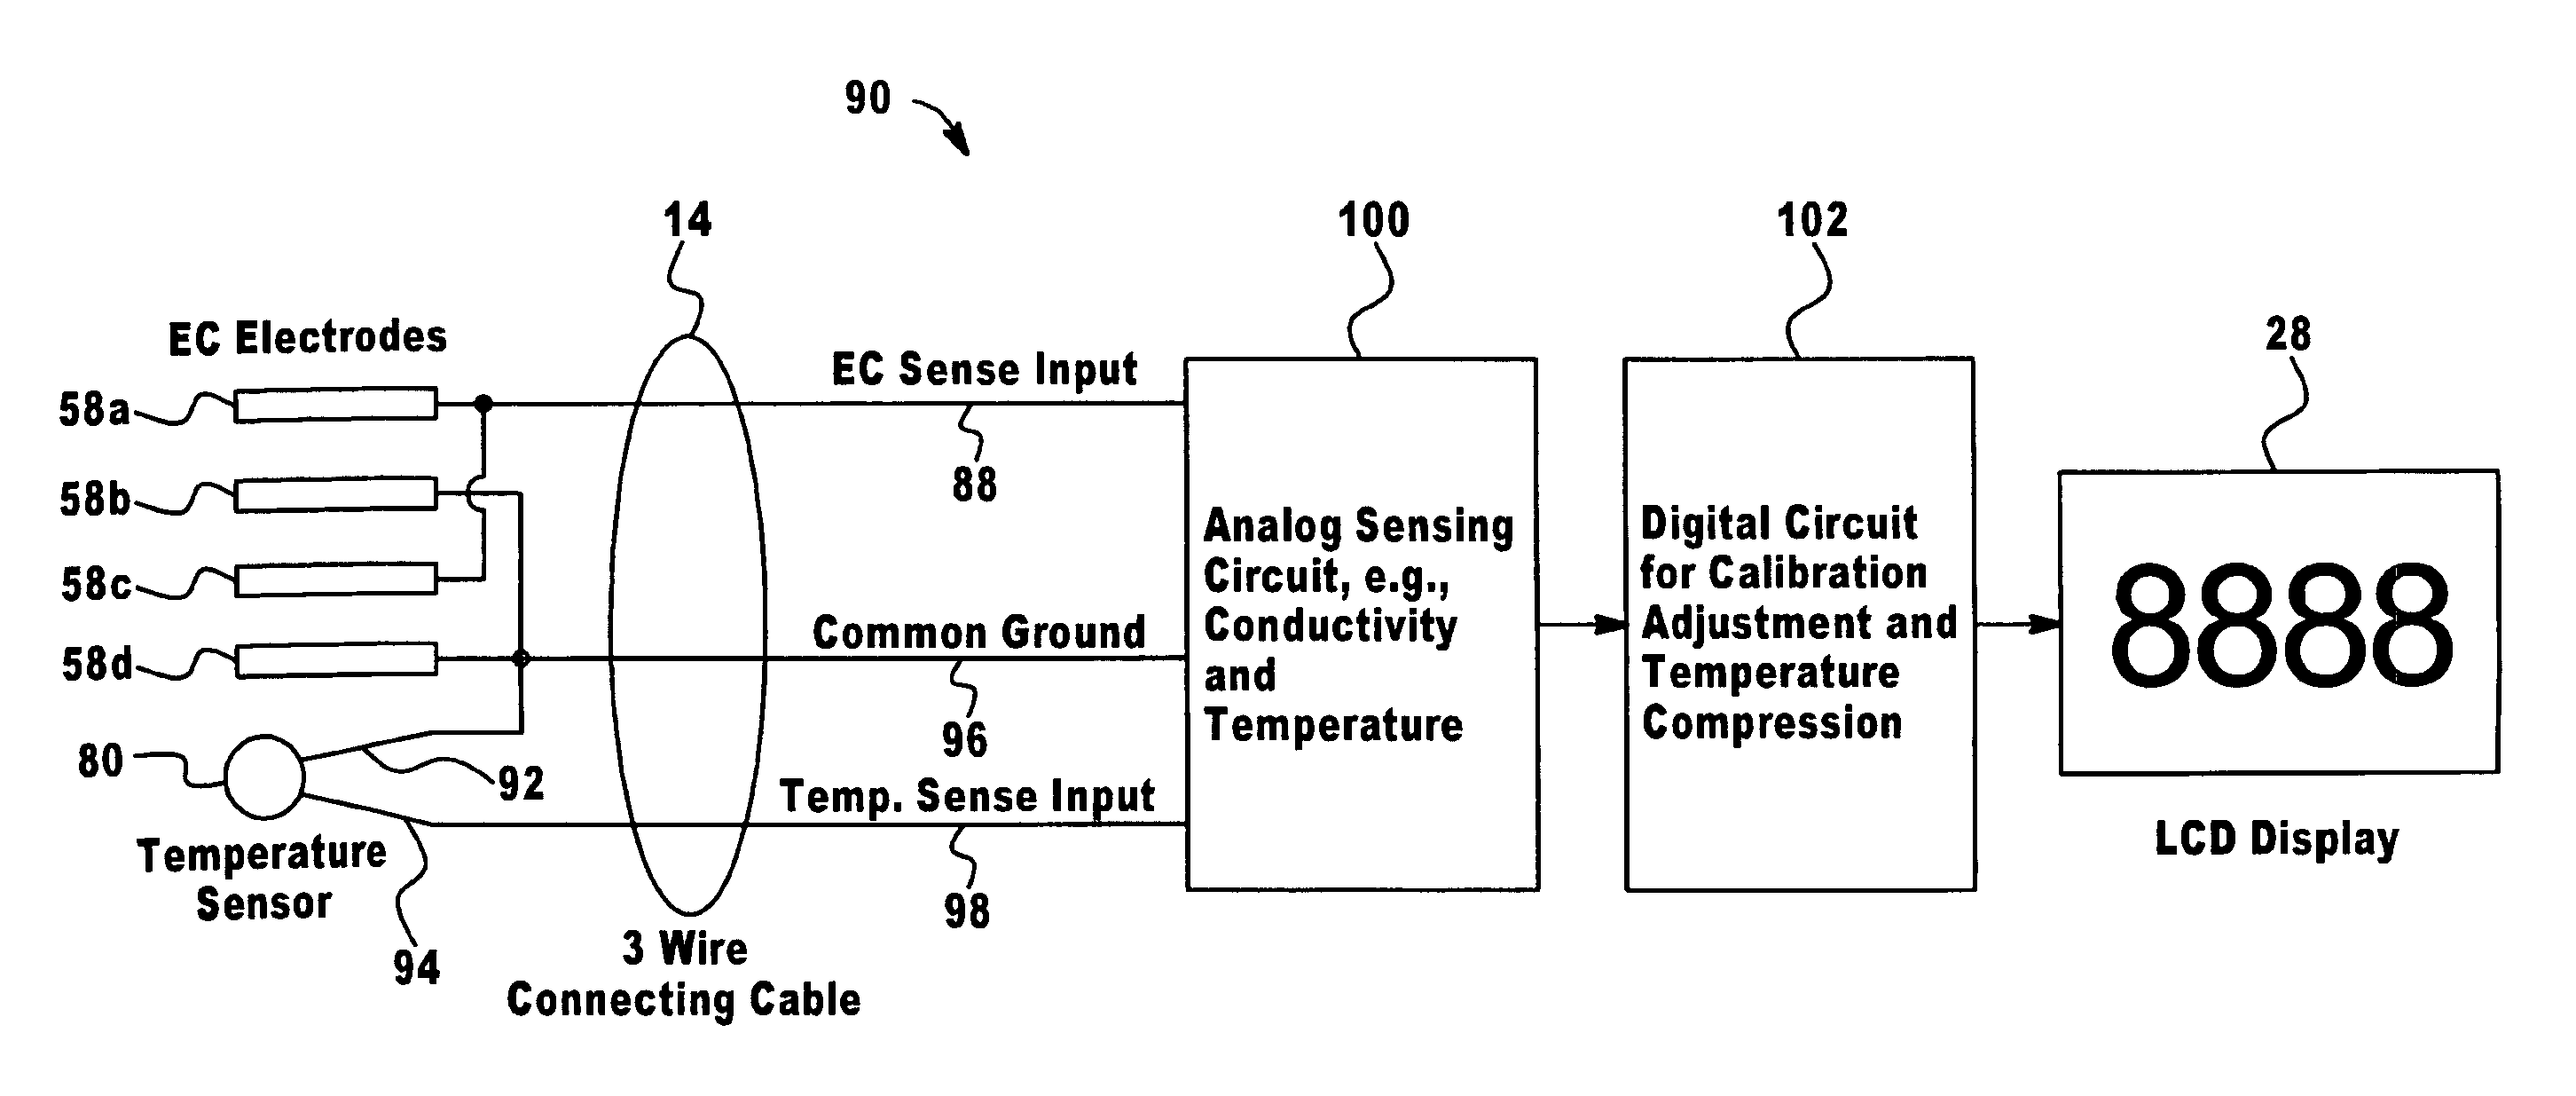 Analytics For Us Patent No 7183779 Soil Probe Device And Method Of Fig 2 A An Example Temperaturesensing Integrated Circuit Used Temperature Sensing Element Is Also Located In The Tip Near Electrodes Connected Electrically To Pcb